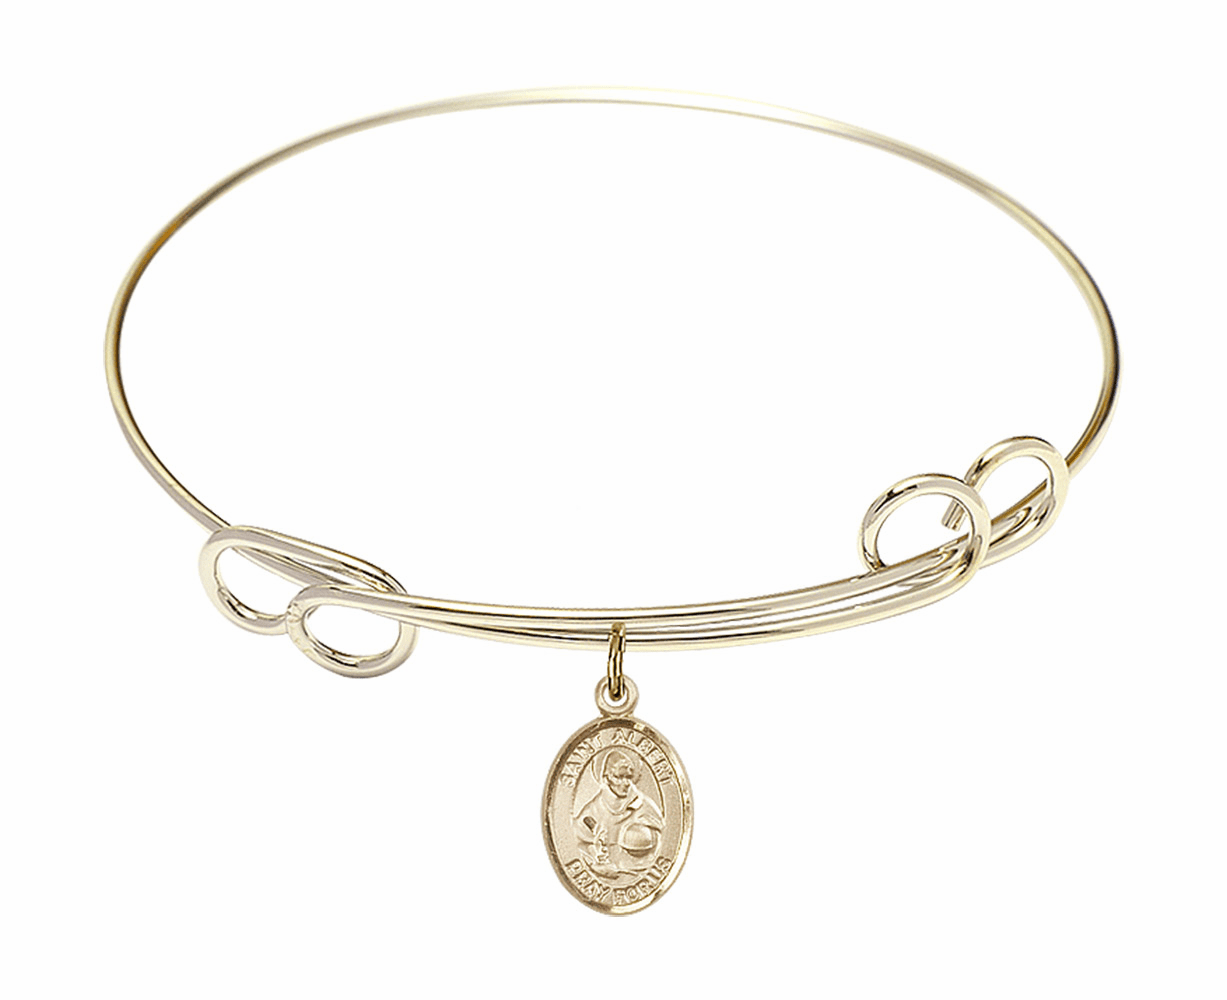 Loop St Albert the Great Bangle 14kt Gold-filled Charm Bracelet by Bliss